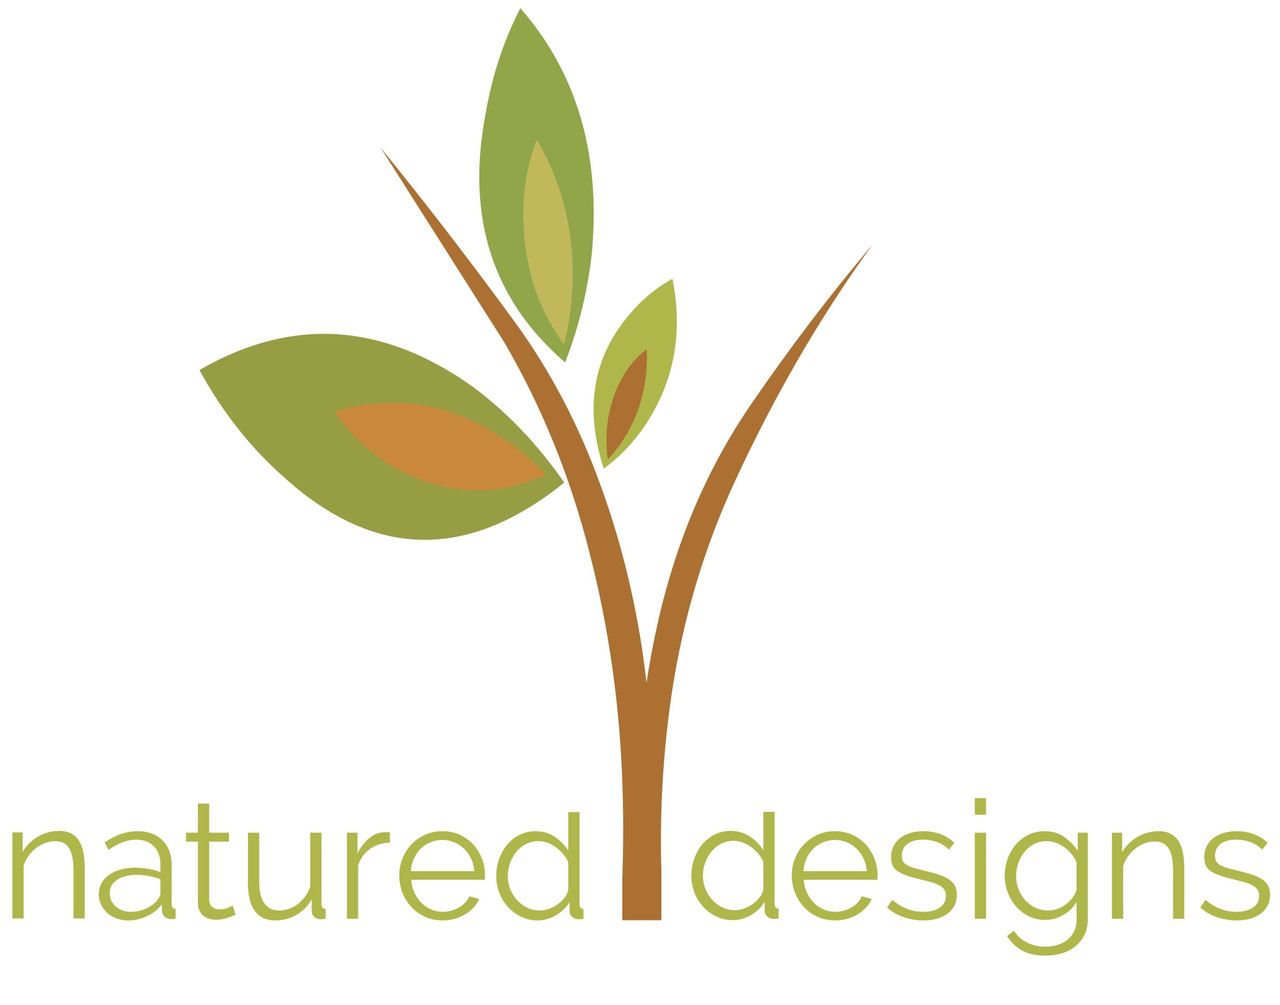 Natured Designs